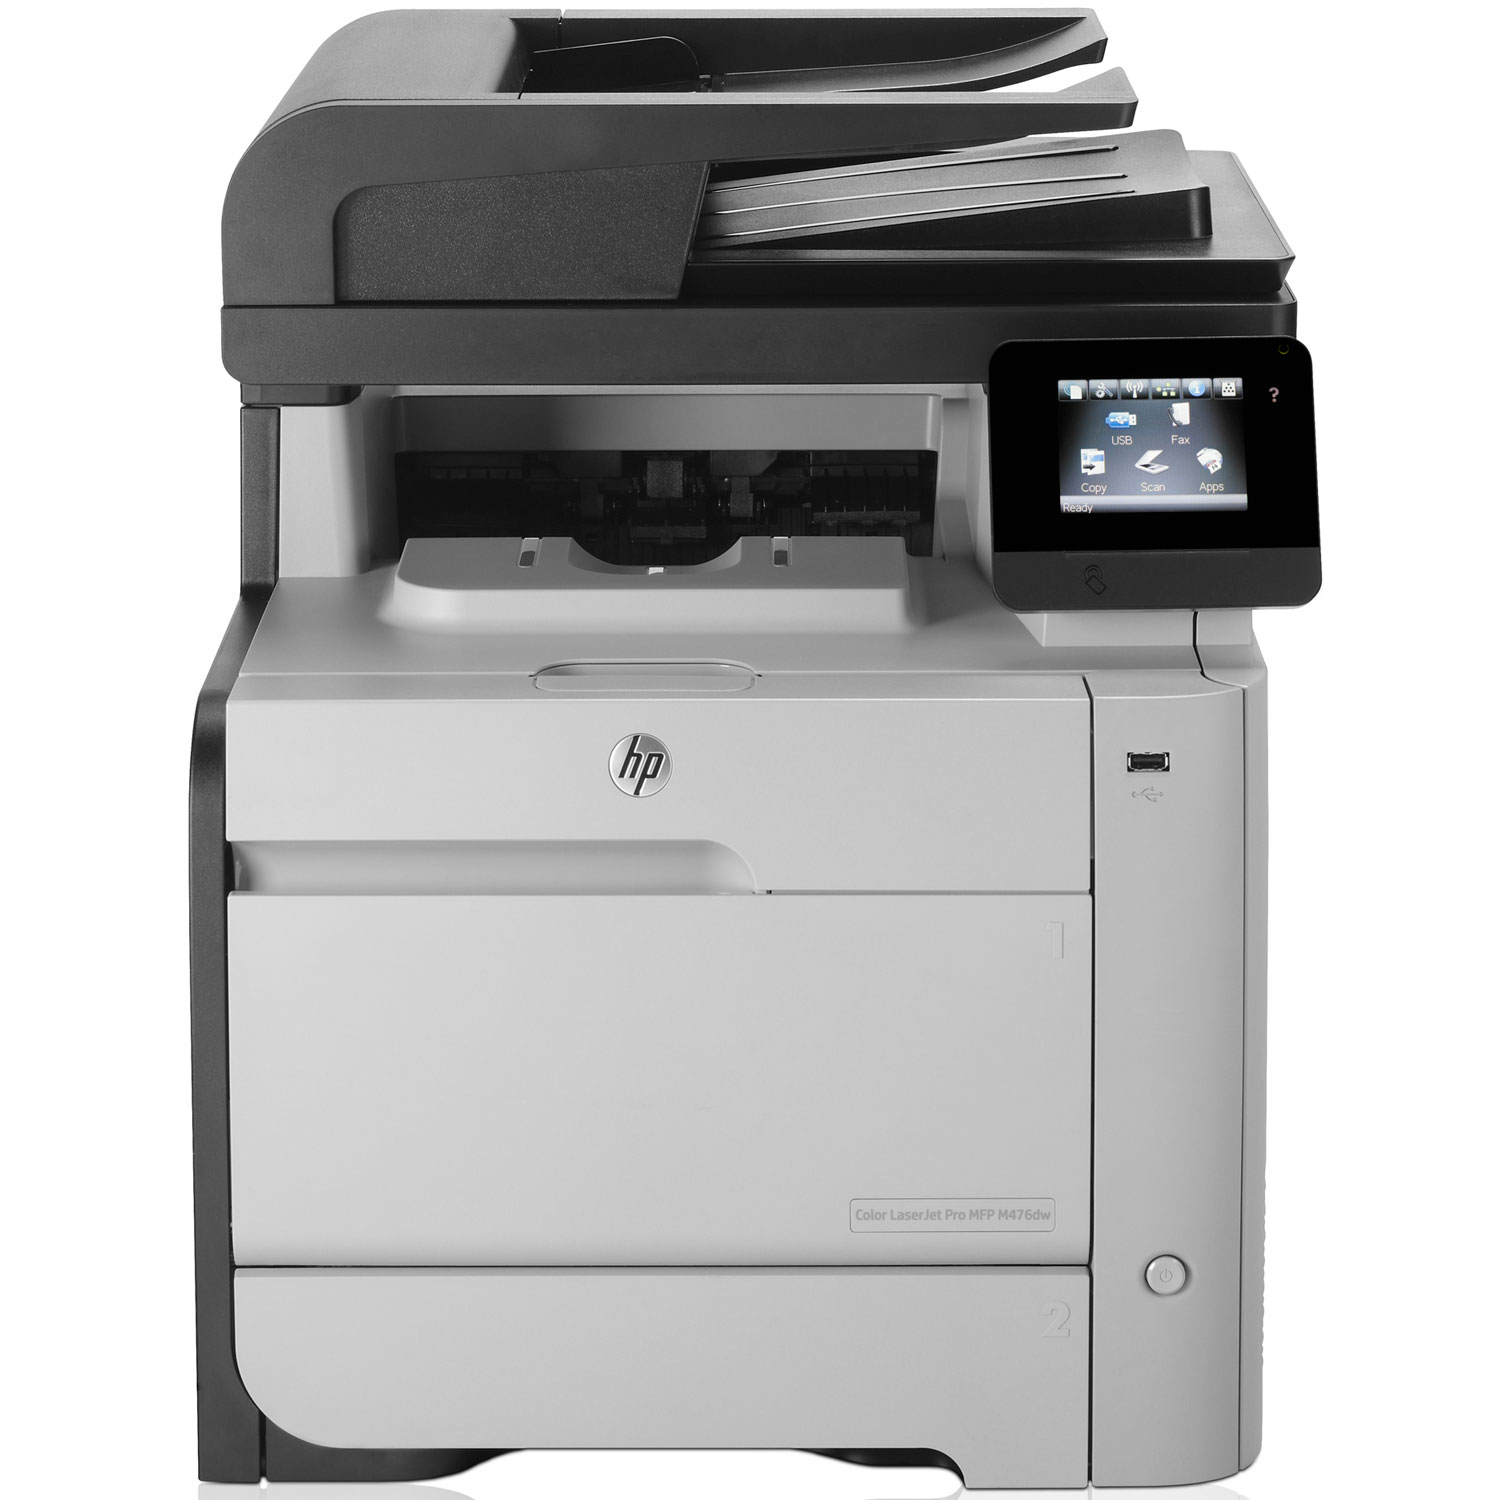 hp color laserjet pro m476dw cf387a imprimante multifonction hp sur ldlc. Black Bedroom Furniture Sets. Home Design Ideas